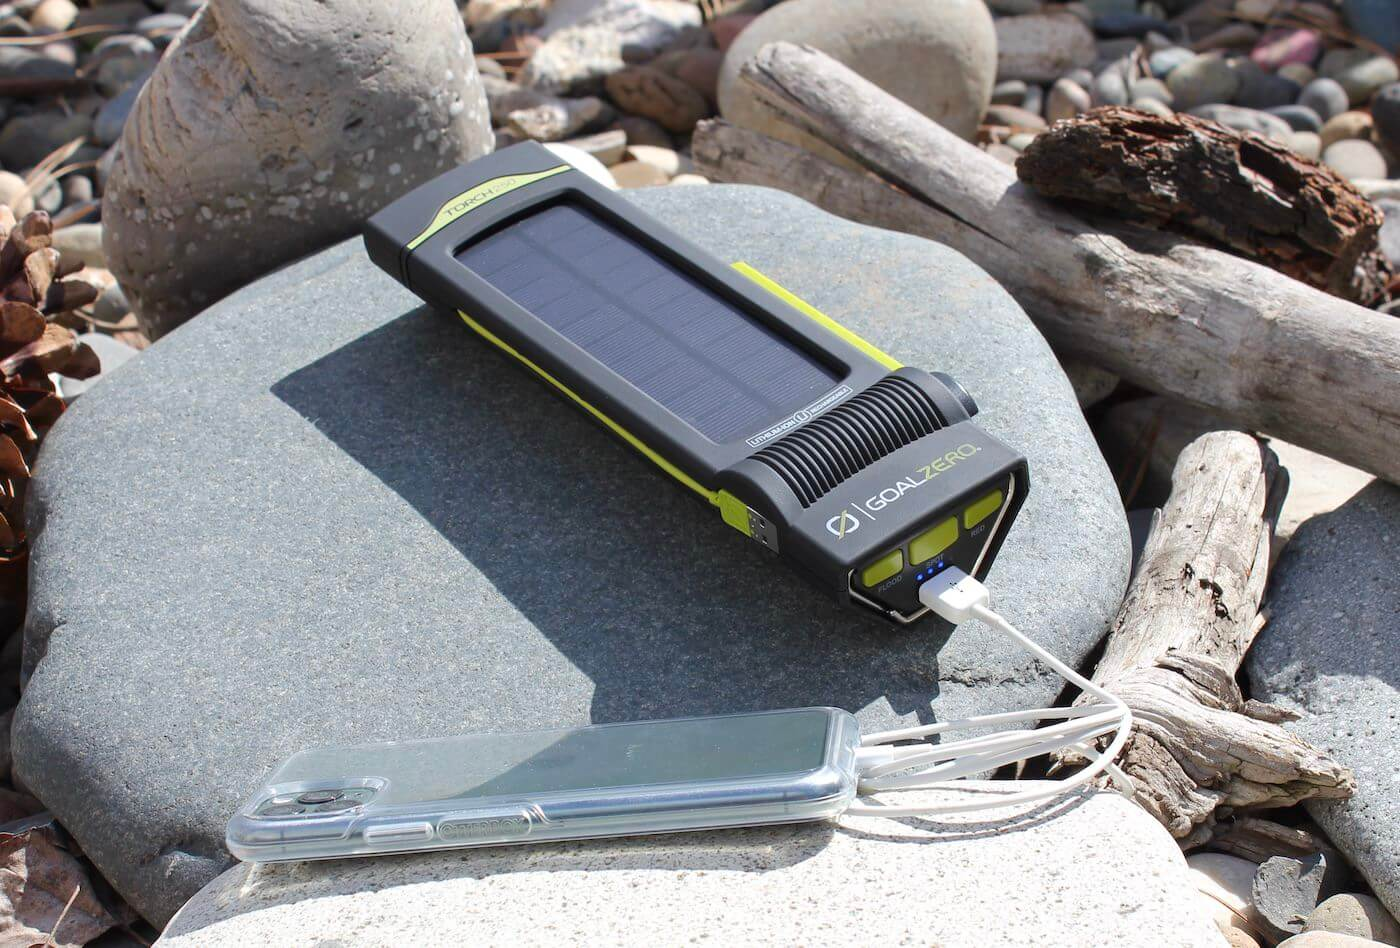 This review photo shows the Goal Zero Torch 250 solar flashlight and phone charger.